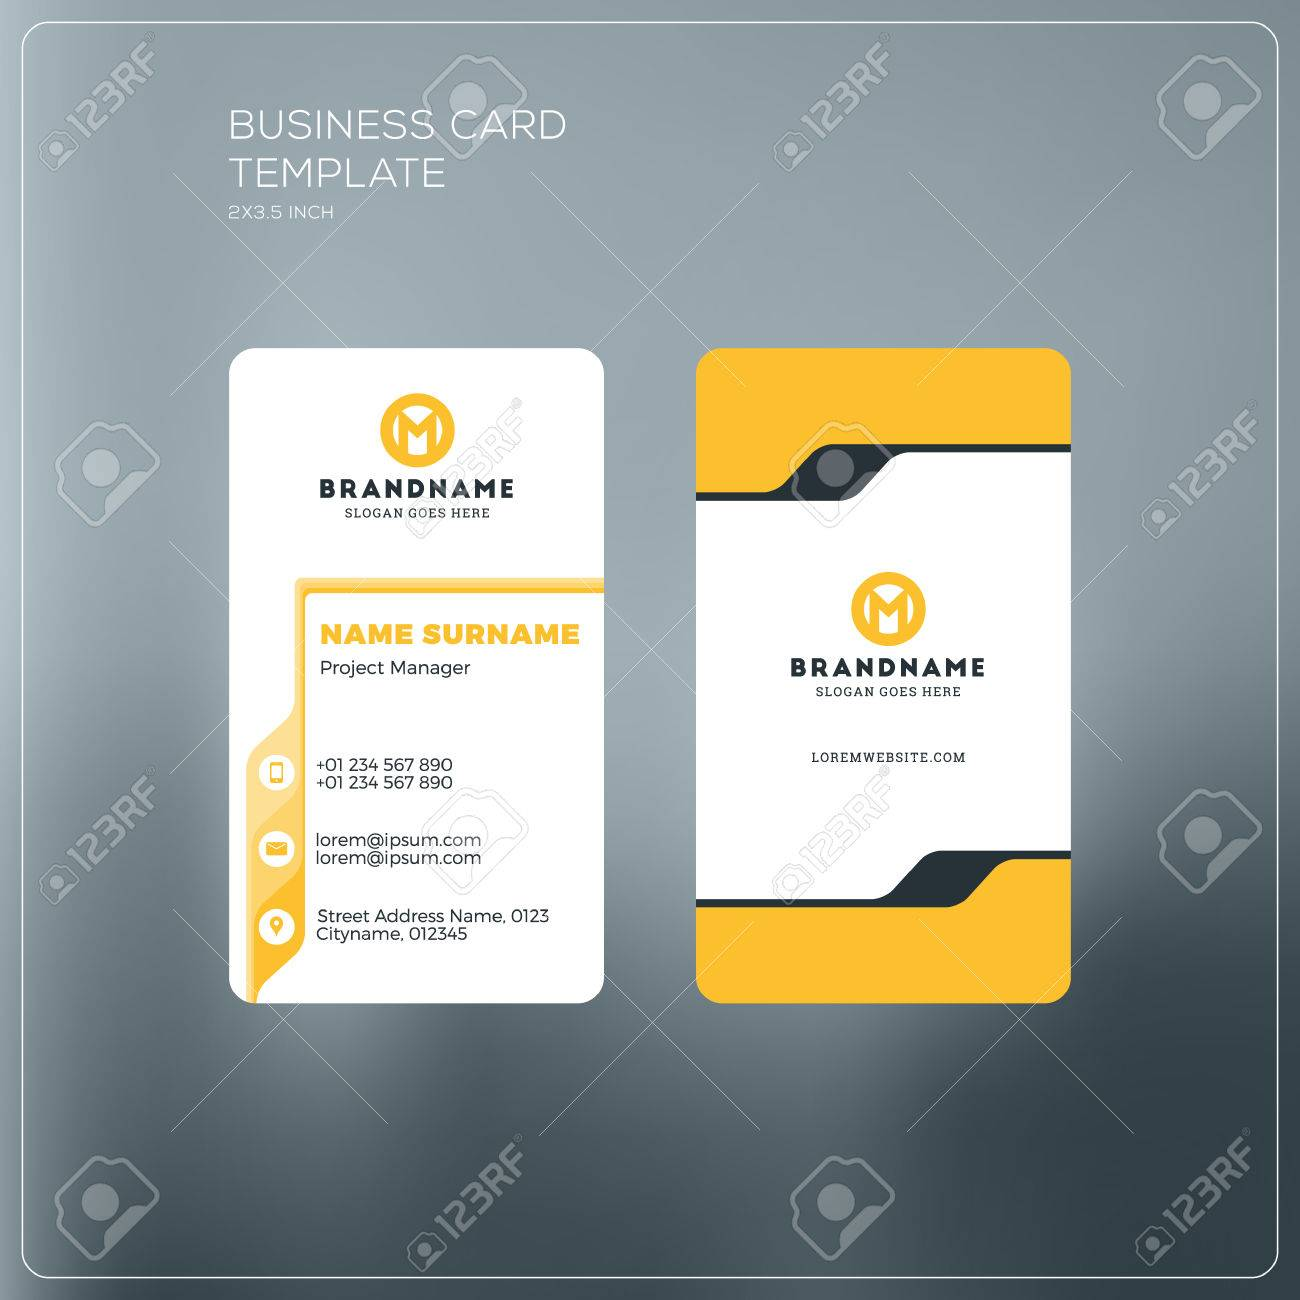 Vertical business card print template personal business card vector vertical business card print template personal business card with company logo black and yellow colors clean flat design vector illustration fbccfo Gallery